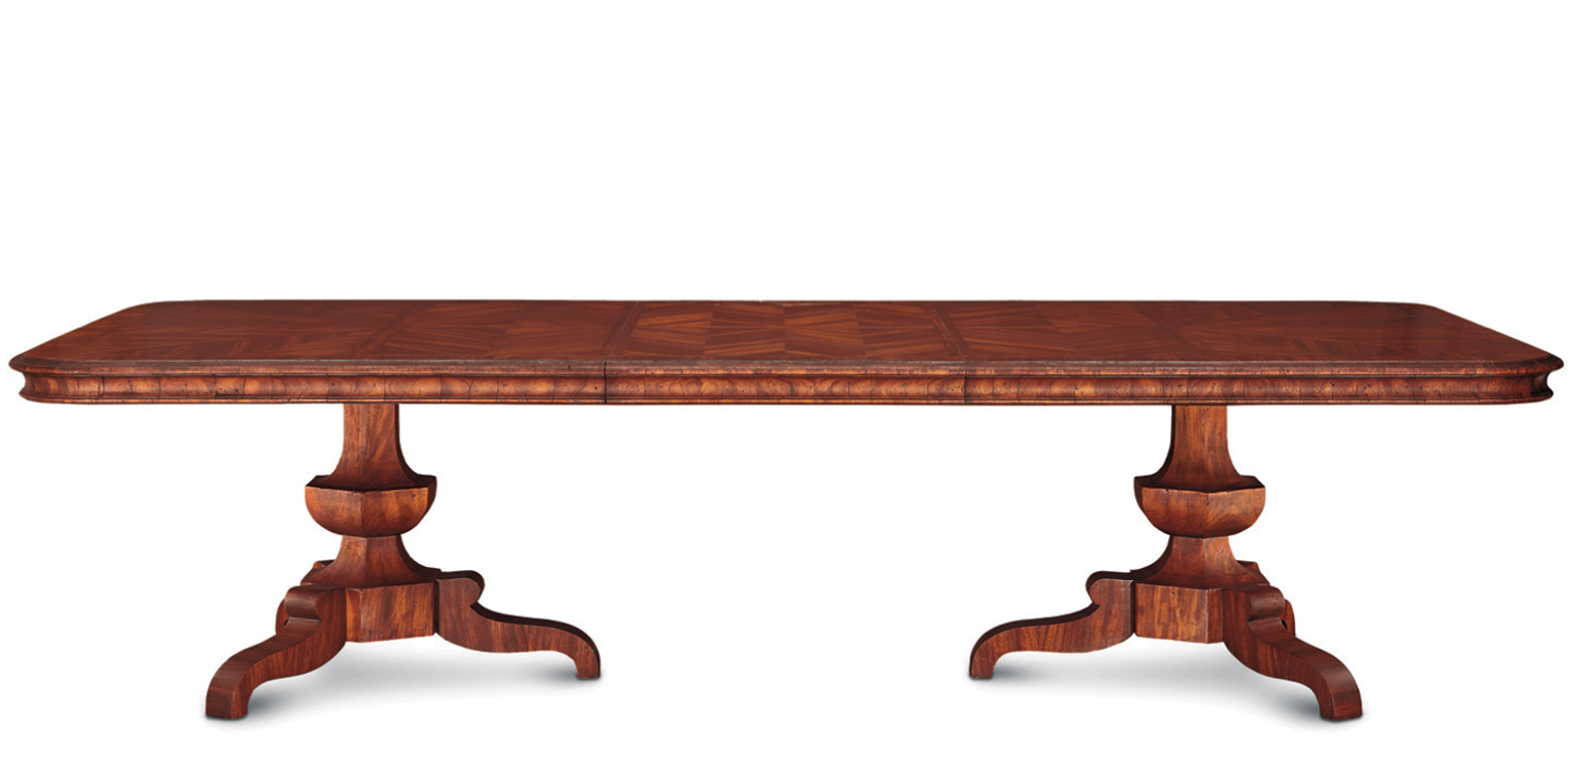 PALAFOXIANA RECTANGULAR EXPANDING DINING TABLE